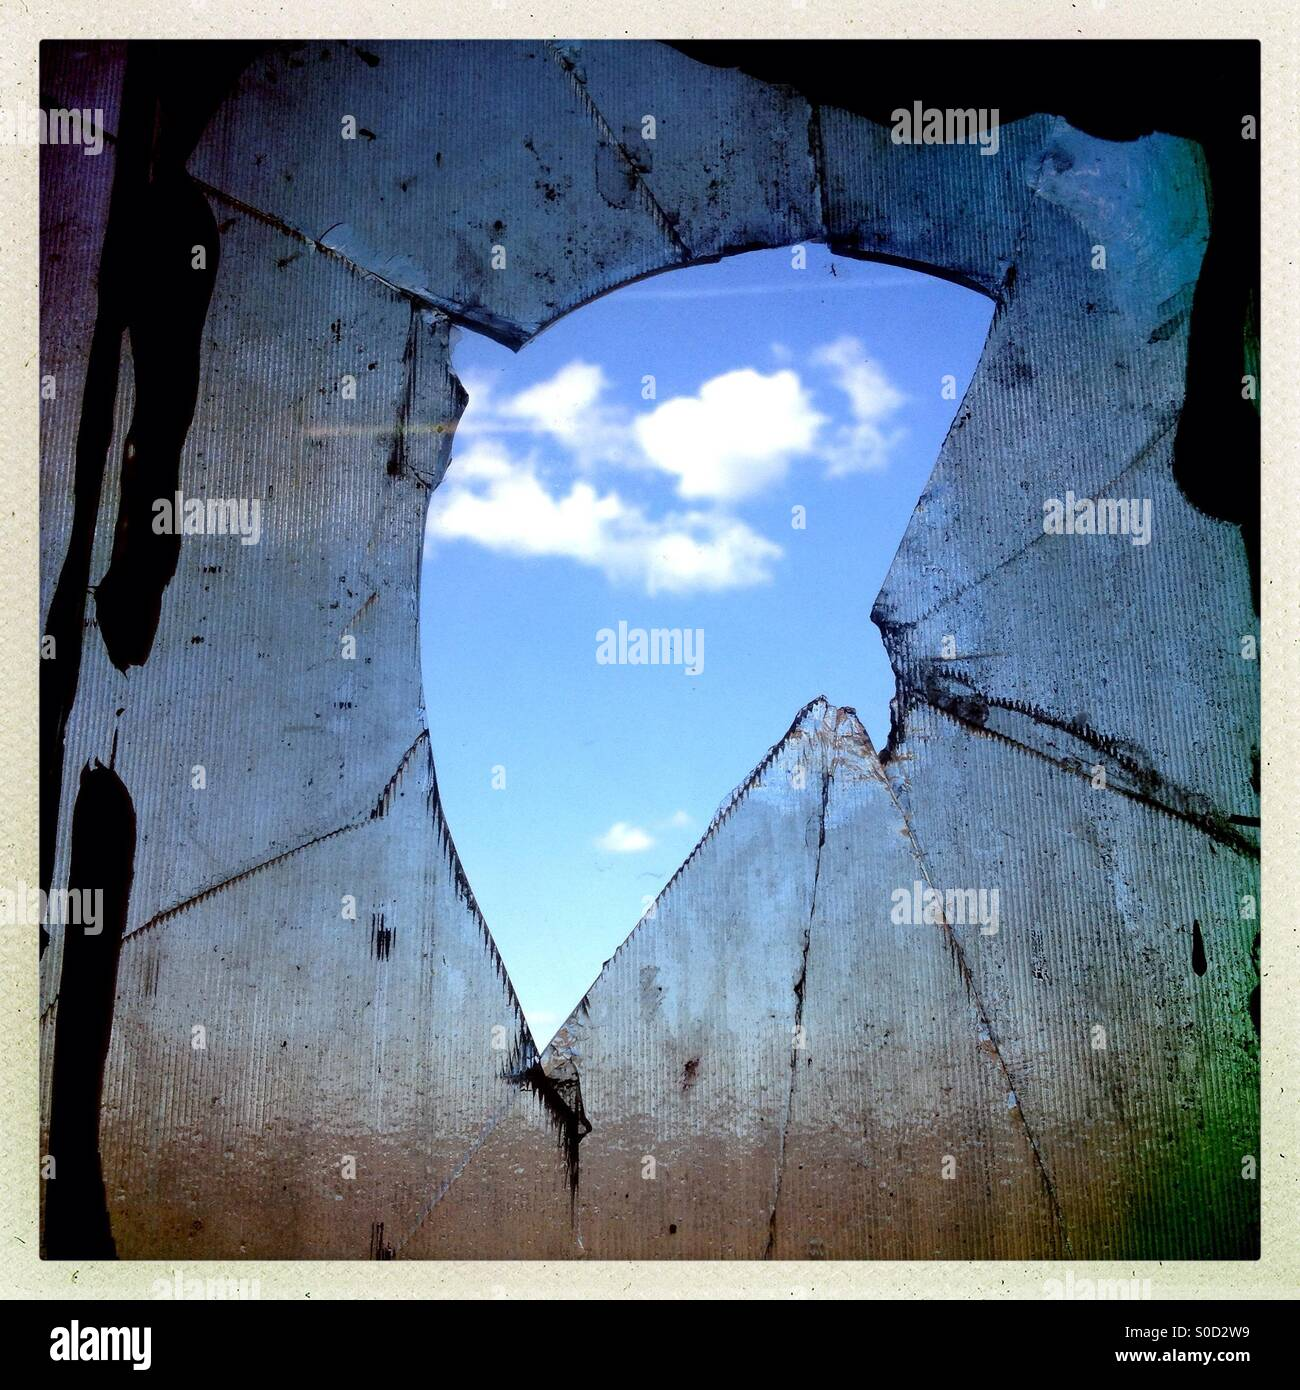 Sky through a broken window - Stock Image